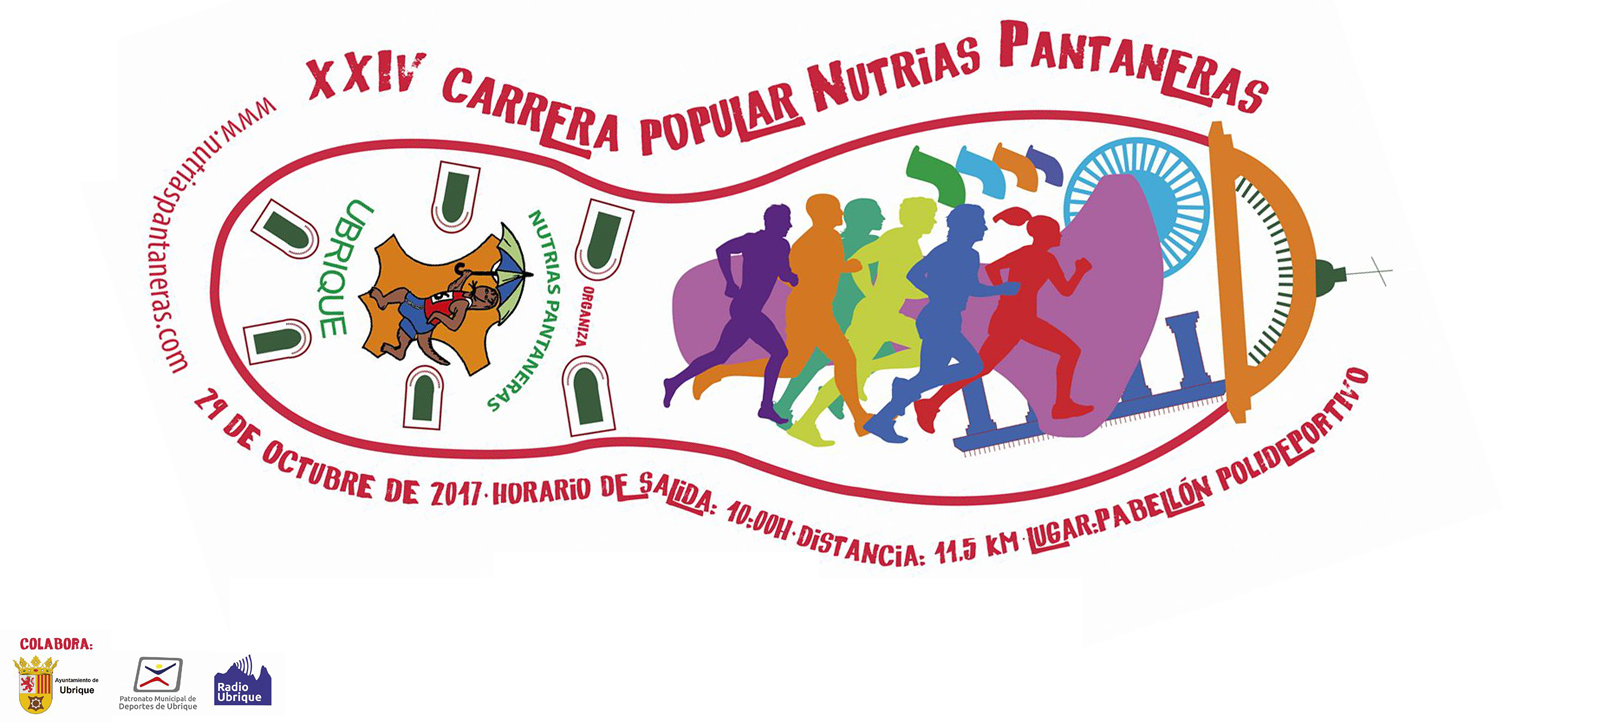 Nutrias Pantaneras - Carrera Popular 2017